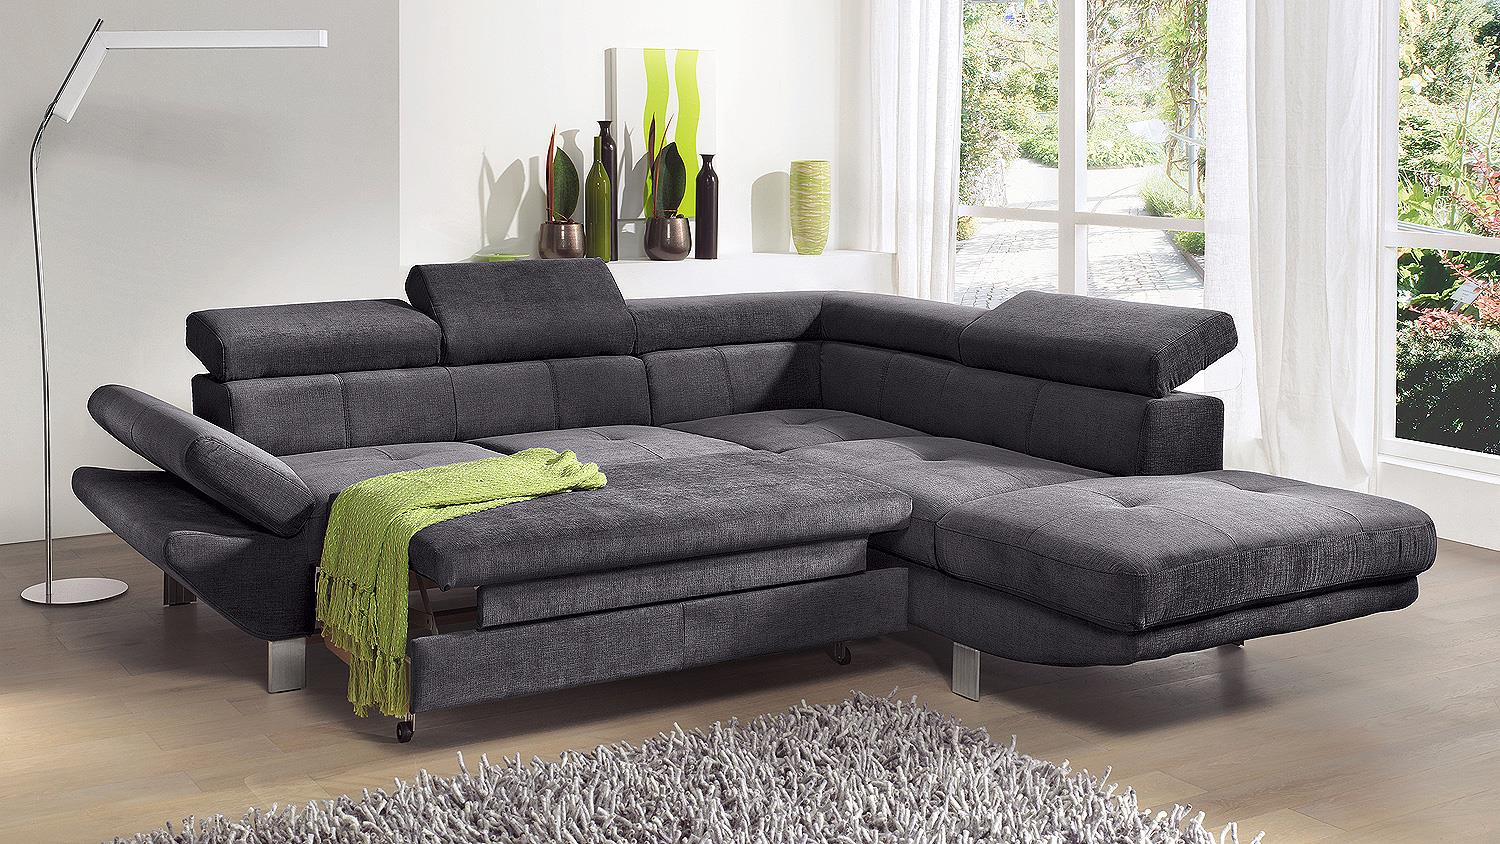 ledersofa anthrazit. Black Bedroom Furniture Sets. Home Design Ideas